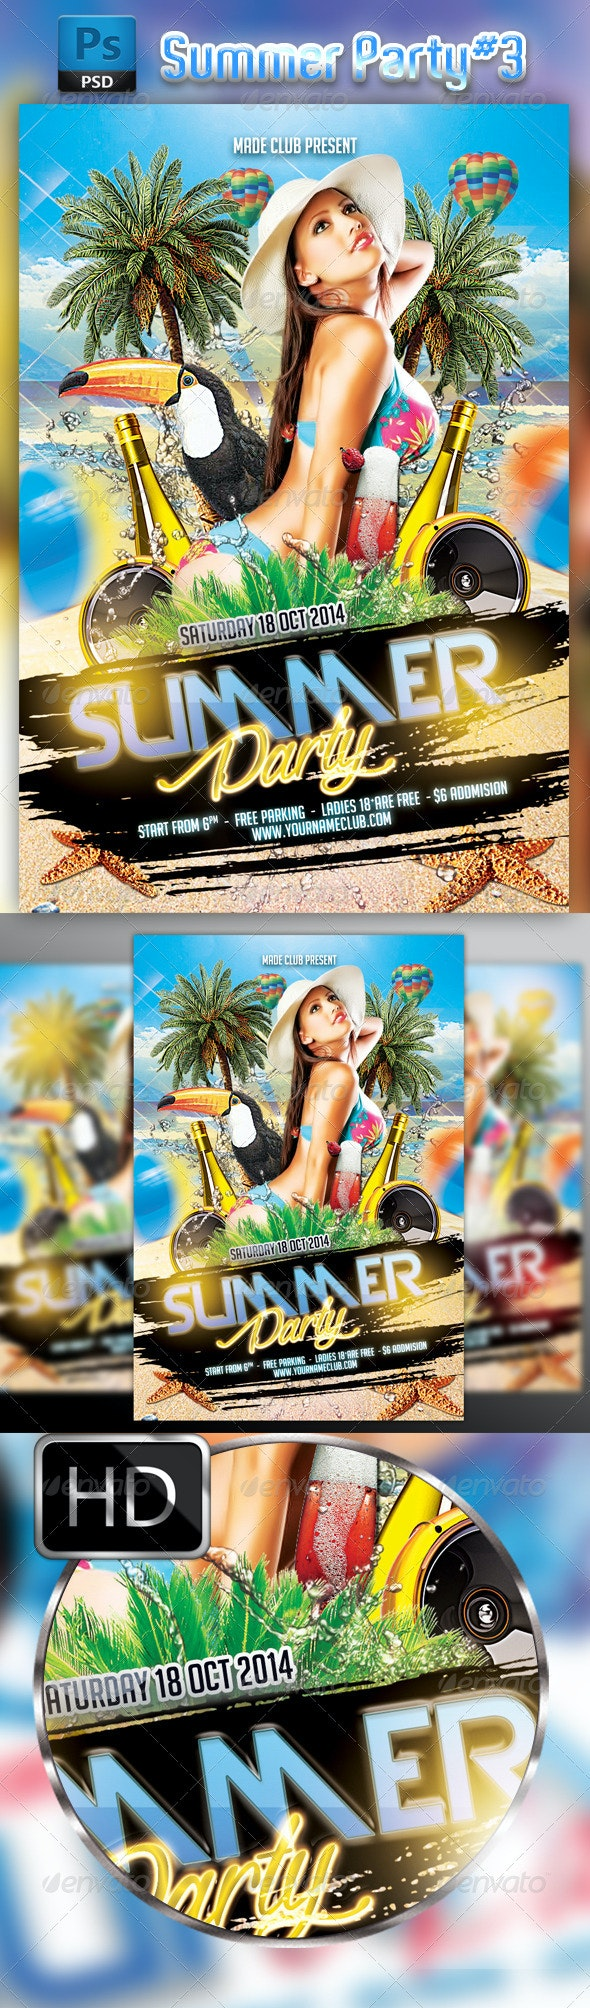 Summer Party Flyer Template 3 - Clubs & Parties Events